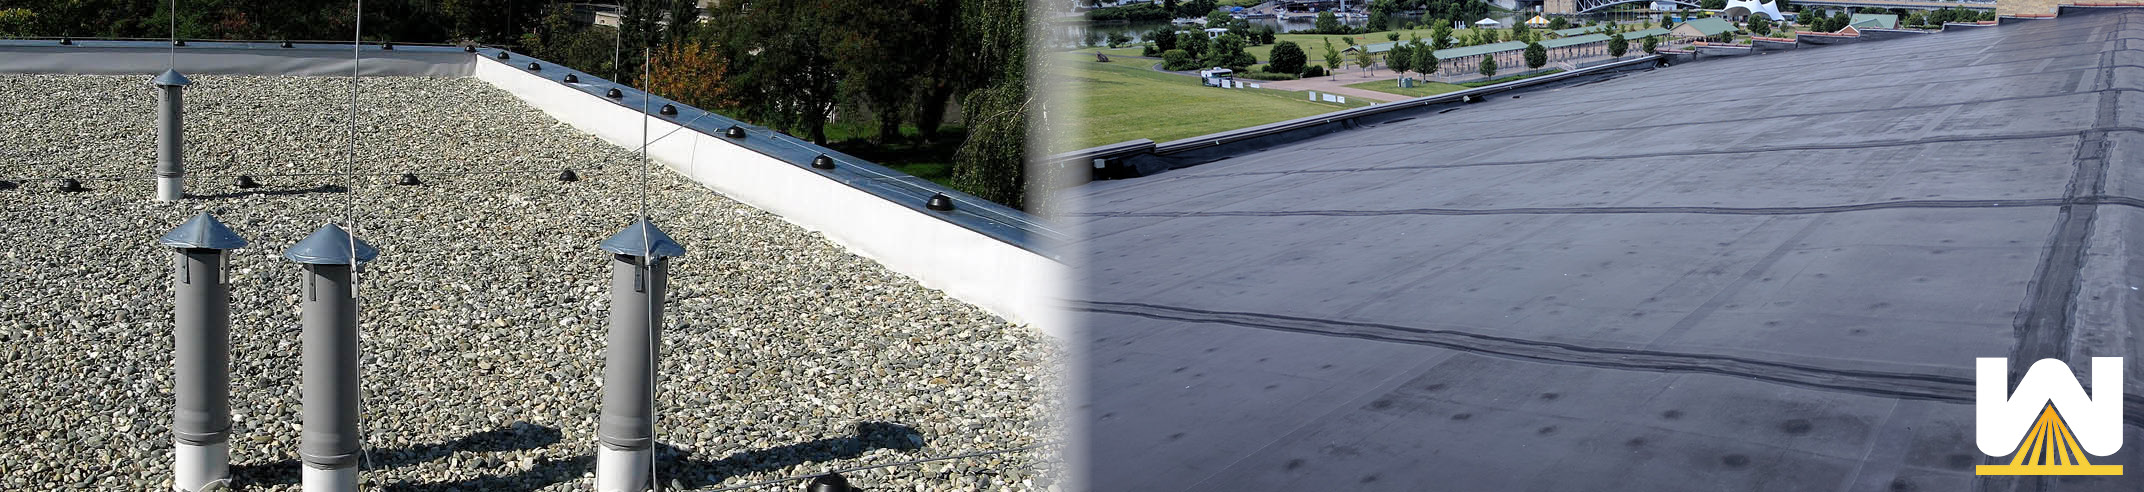 Roofing Tar Single Ply Membrane Vs Built Up Roofing Which Is Best For